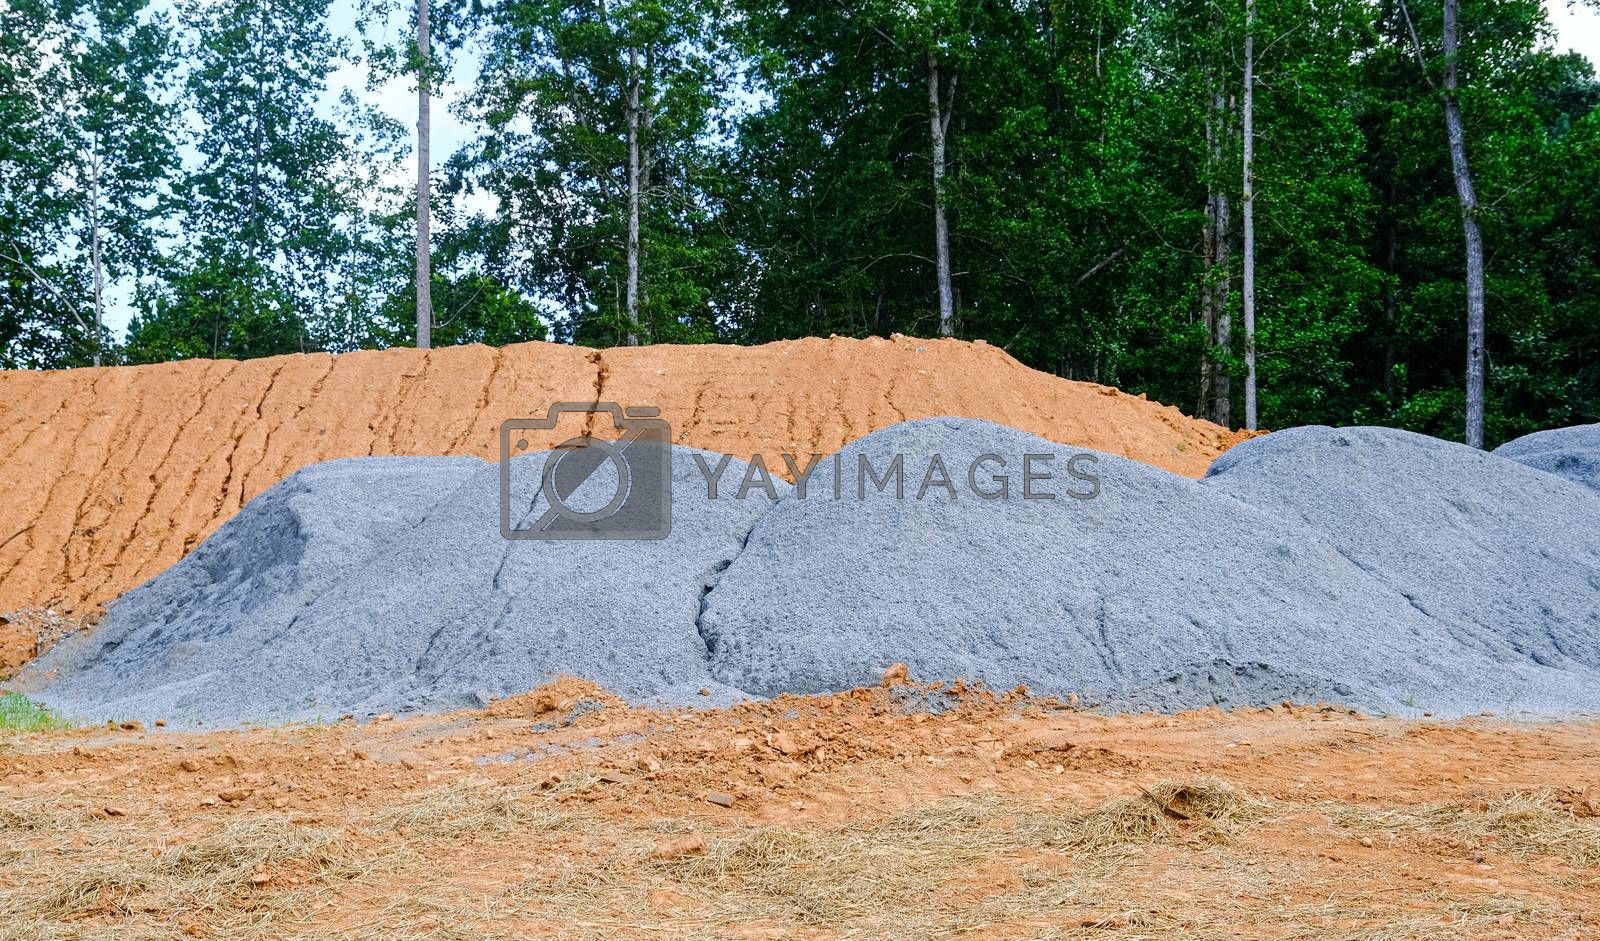 Piles of Gravel and Dirt at a Residential Construction Site